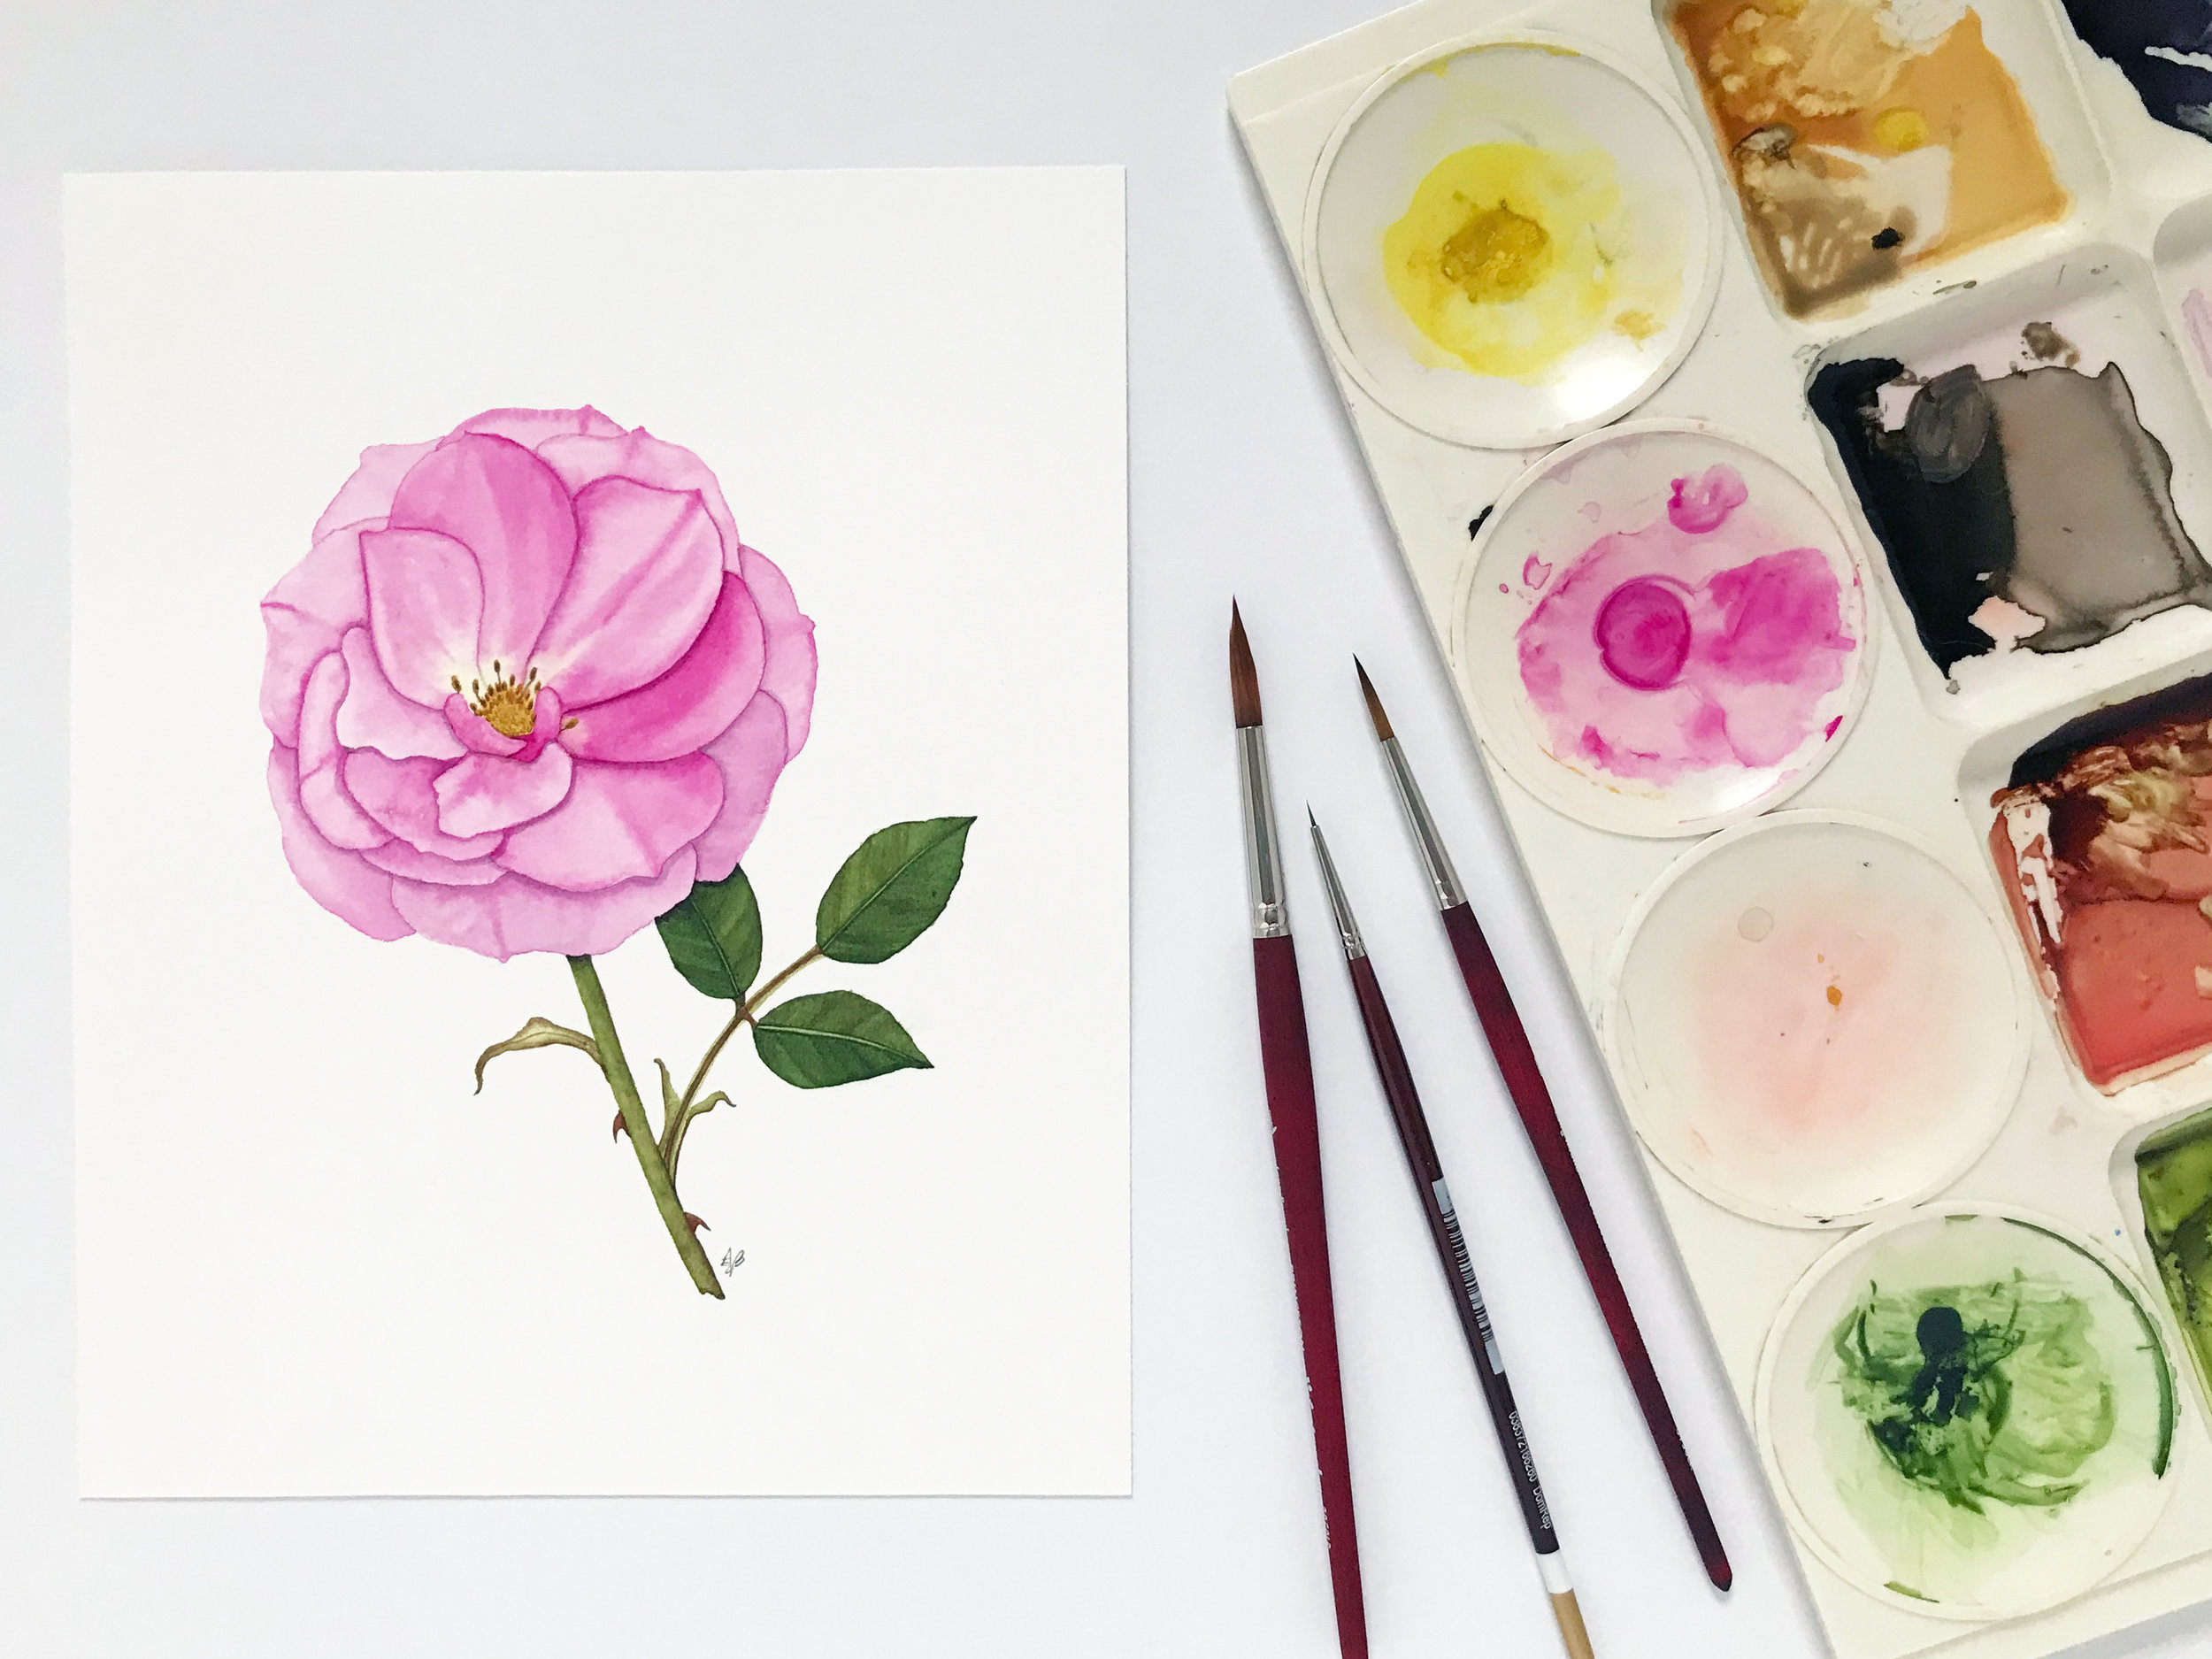 Pink Rose Botanical Watercolor Painting by Anne Butera of My Giant Strawberry